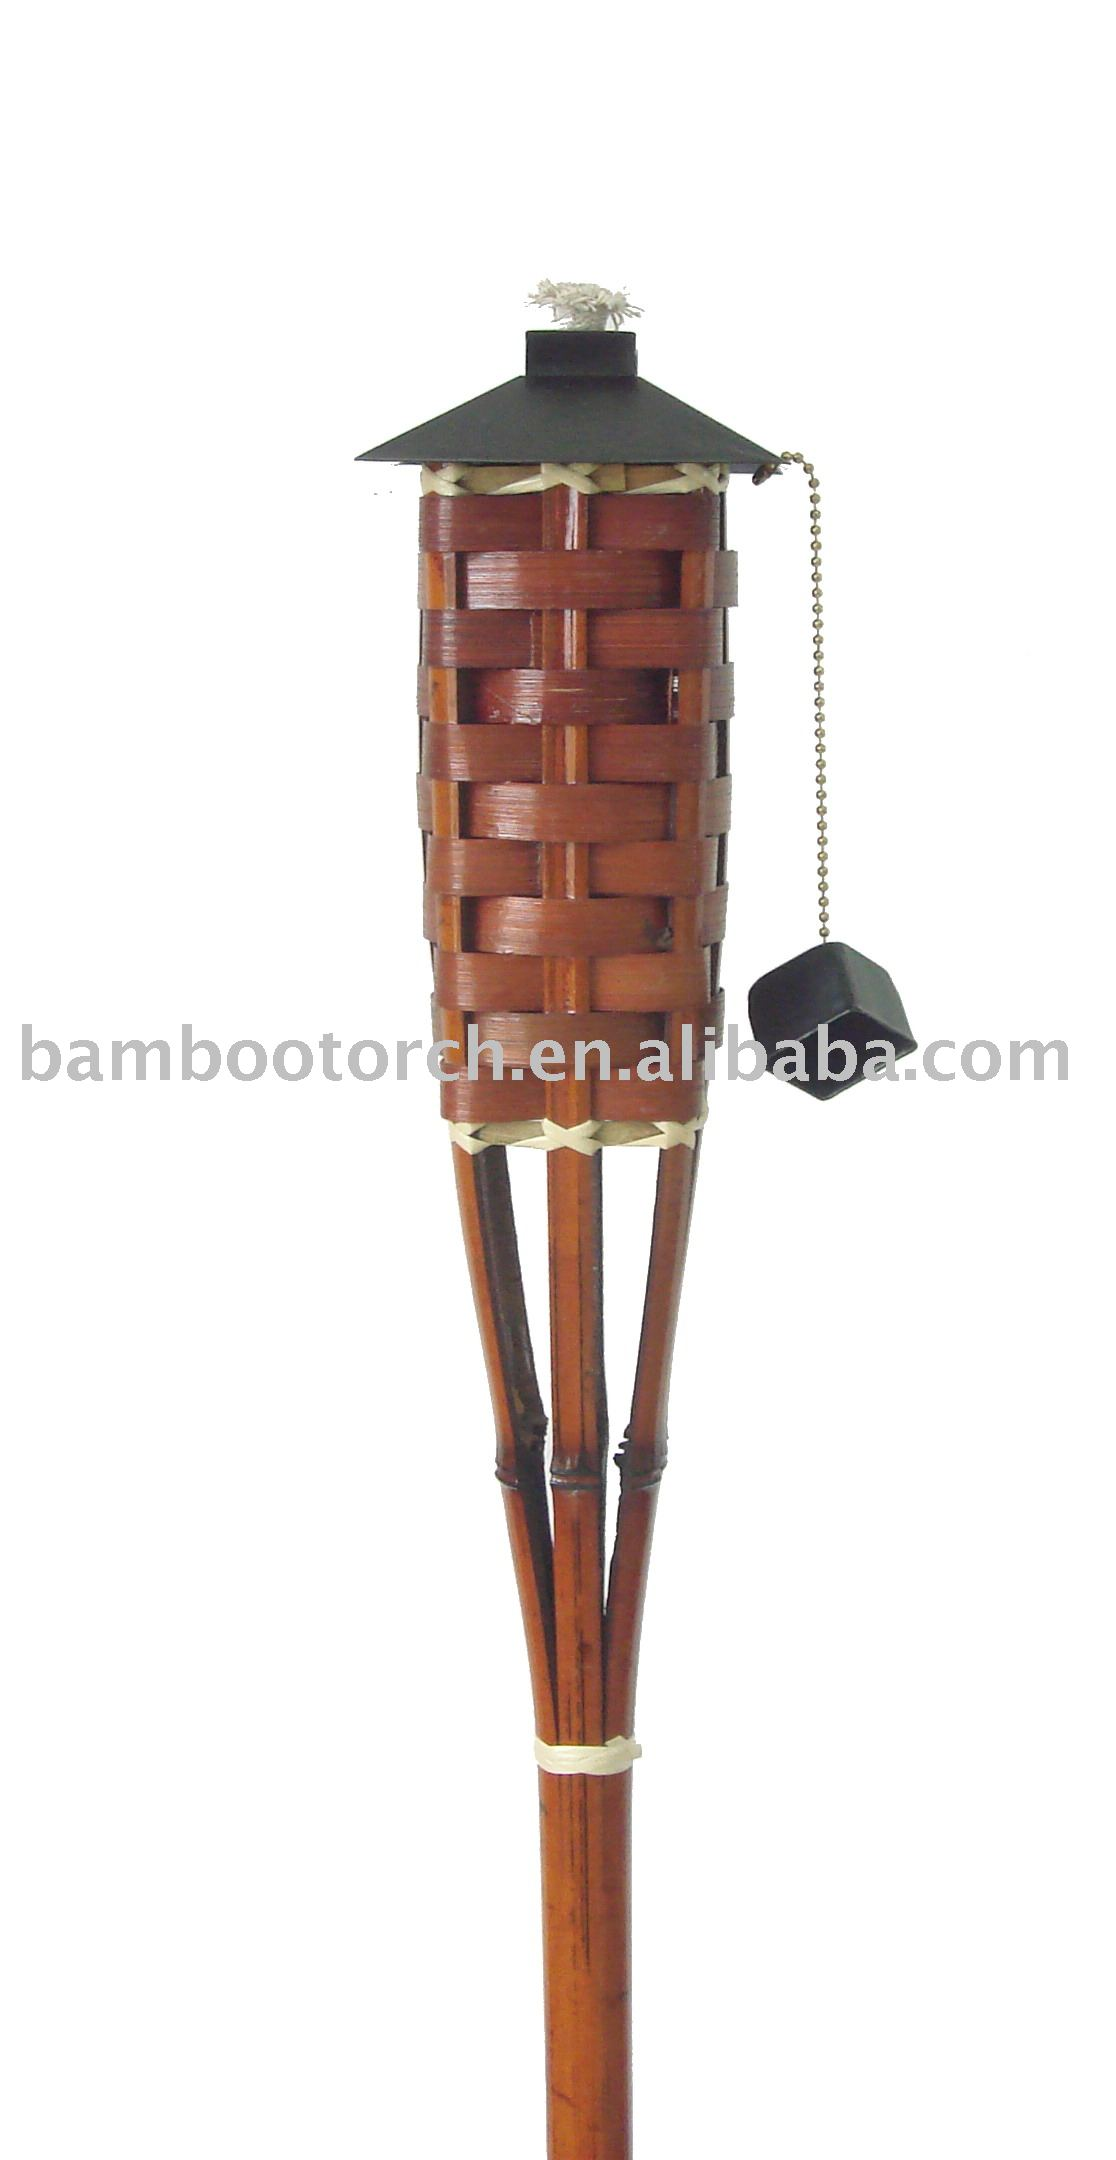 Tiki Torch, Tiki Torch Suppliers And Manufacturers At Alibaba.com